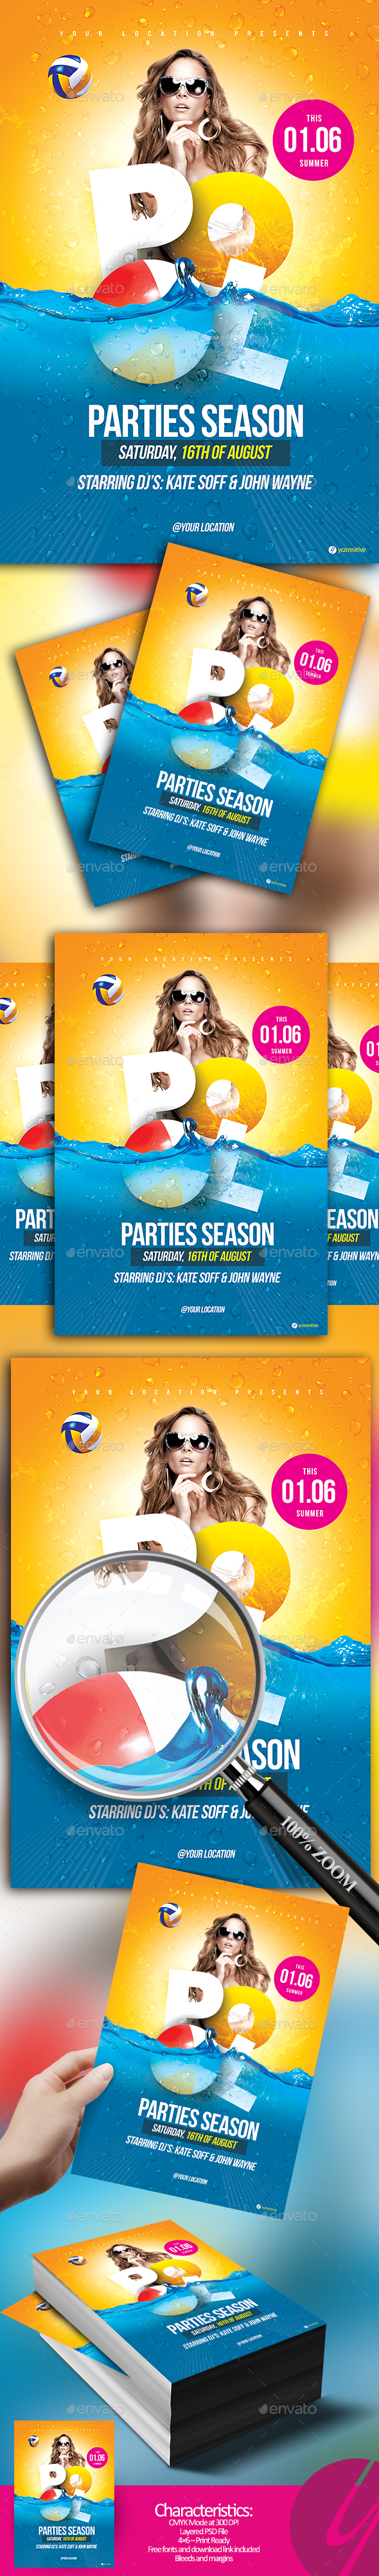 Pool Parties Season Flyer - Clubs & Parties Events